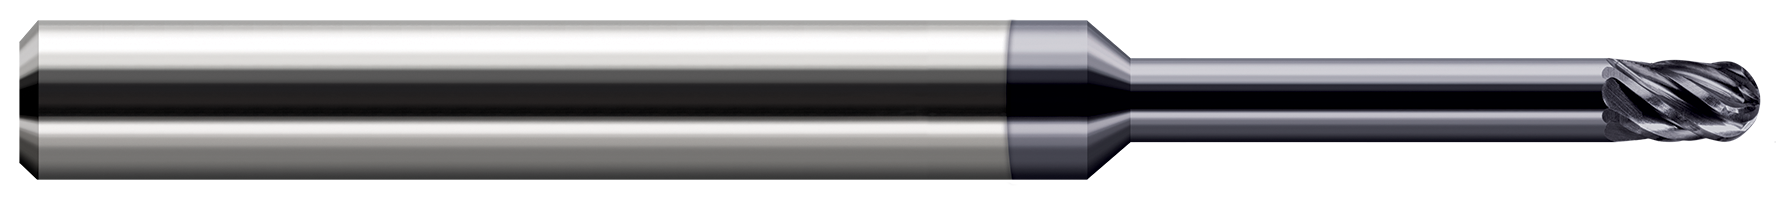 End Mills for Hardened Steels - Ball - For Steels Up to 55 Rc - Long Reach, Stub Flute